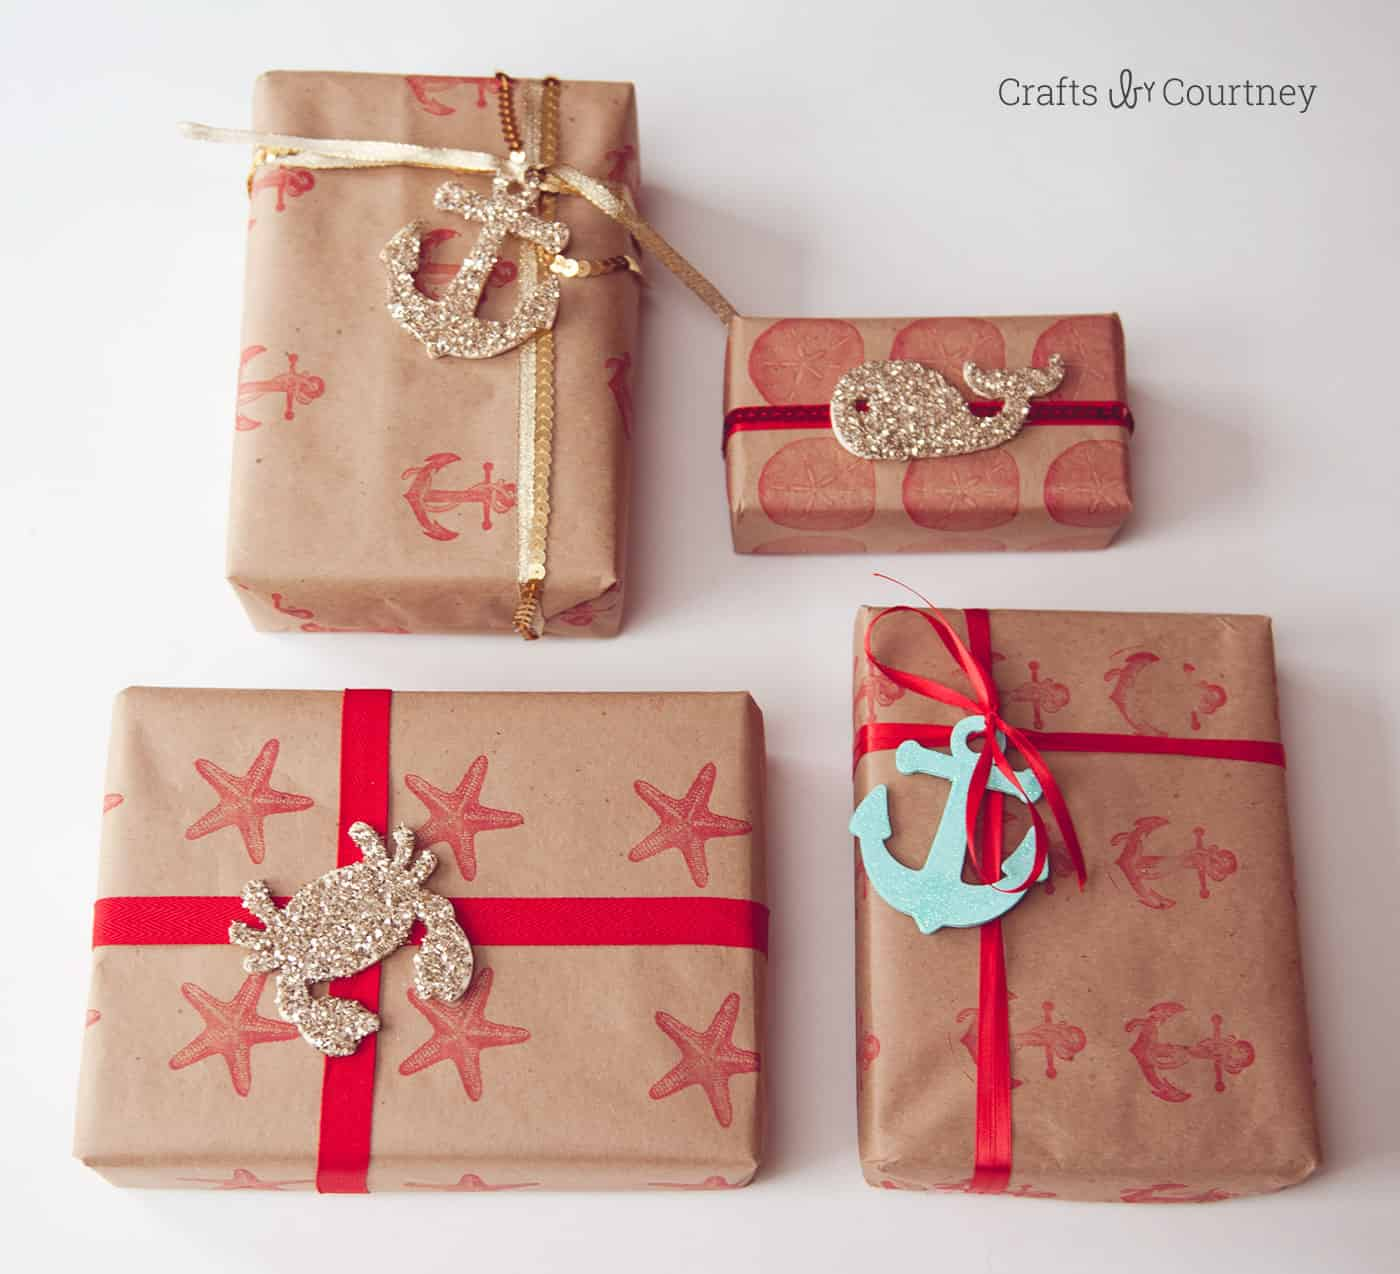 I fell in love with a beautiful nautical gift wrap from a magazine - so I decided to make my own DIY wrapping paper using stamps and glitter. So pretty!